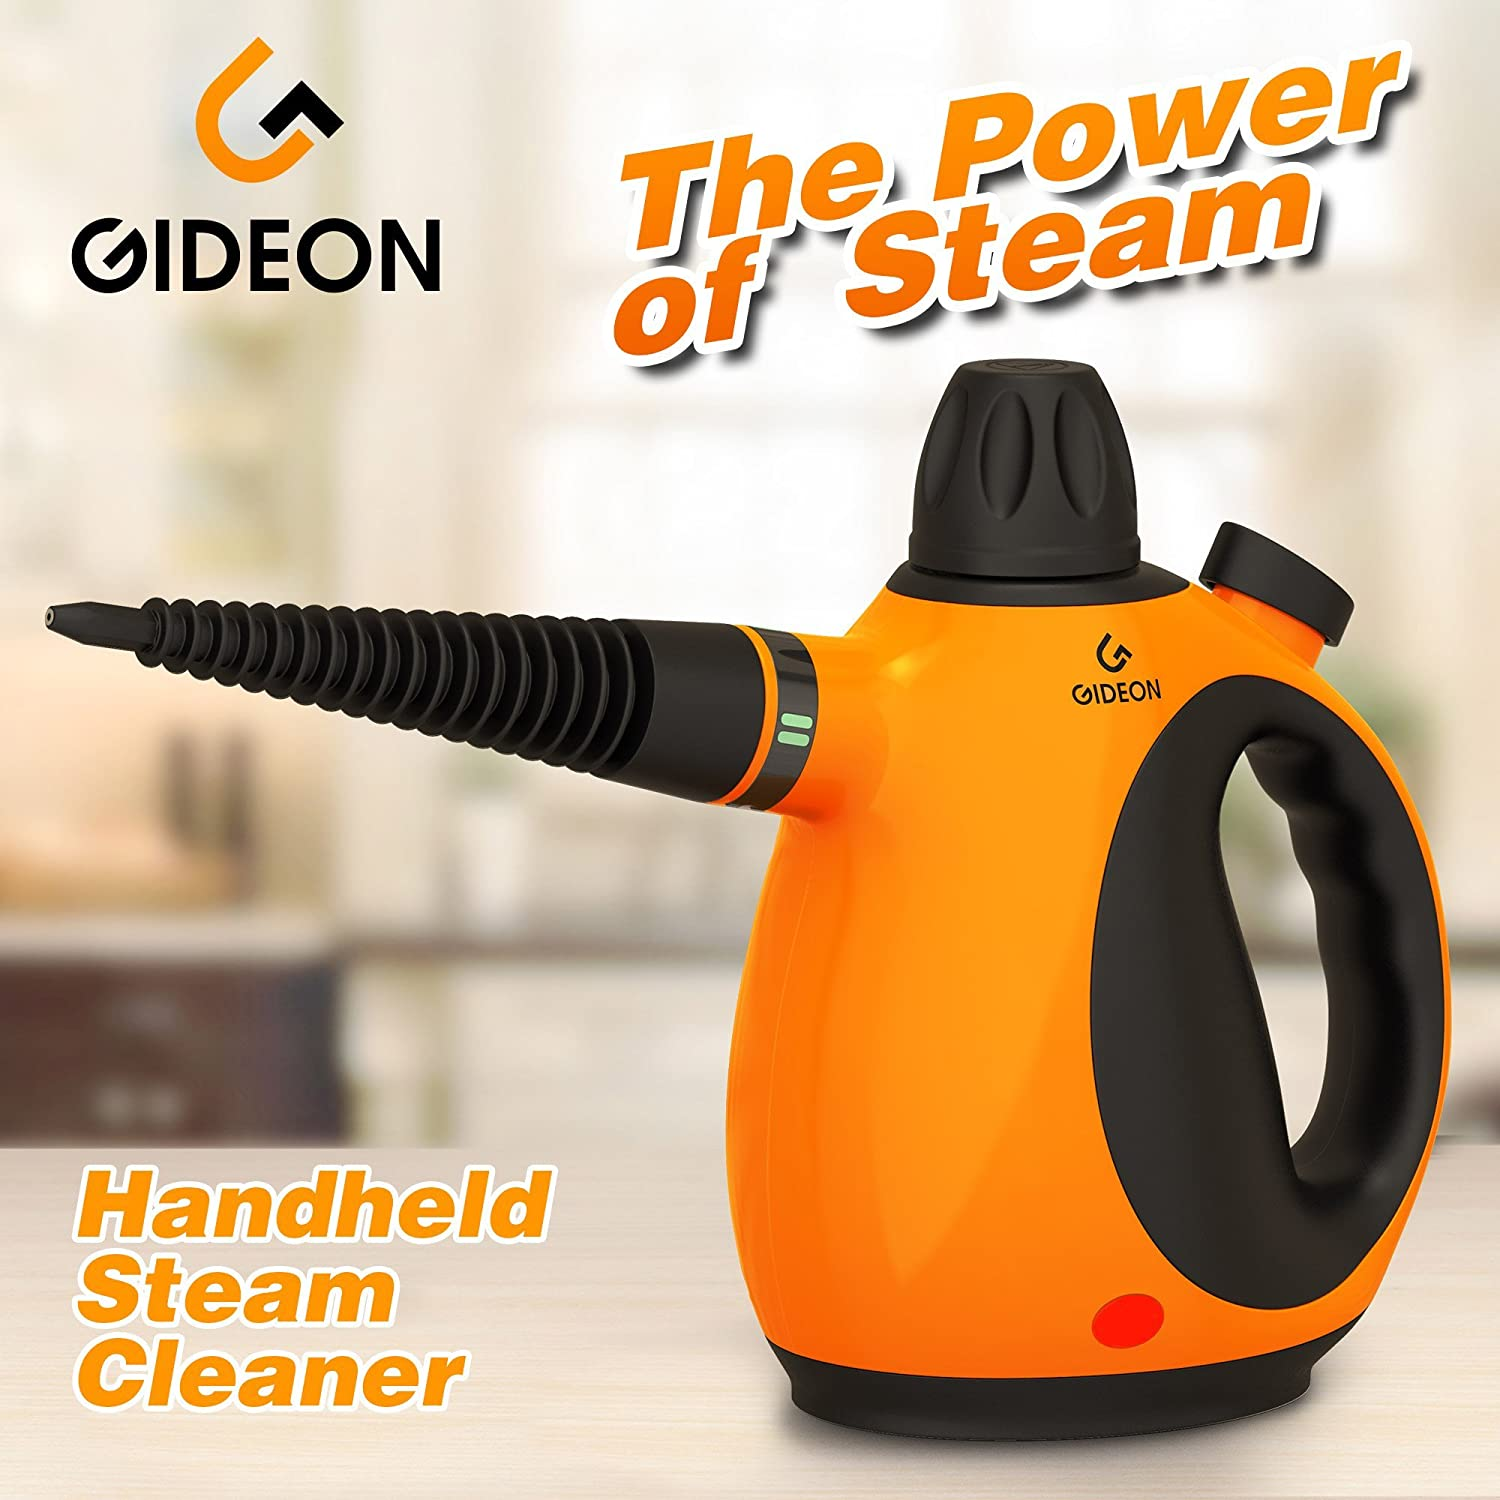 Gideon™ Handheld Pressurized Steam Cleaner and Sanitizer / Powerful Multi-purpose Steamer, Removes Stains, Grease, Mold, etc. and Disinfects / Removes Wrinkles from Garments GD-MS-2